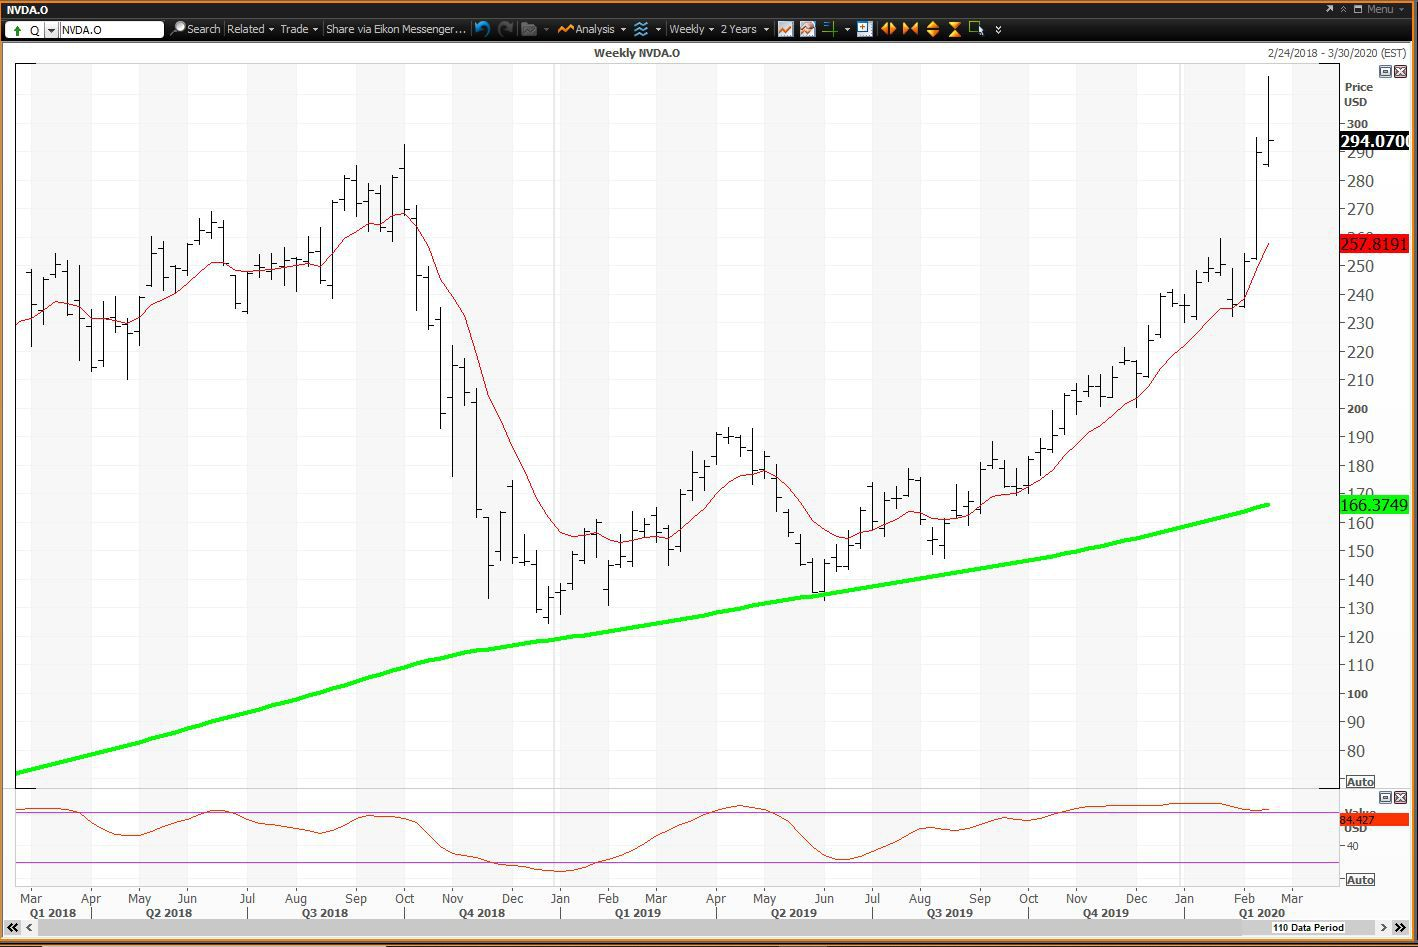 Weekly chart showing the share price performance of NVIDIA Corporation (NVDA)